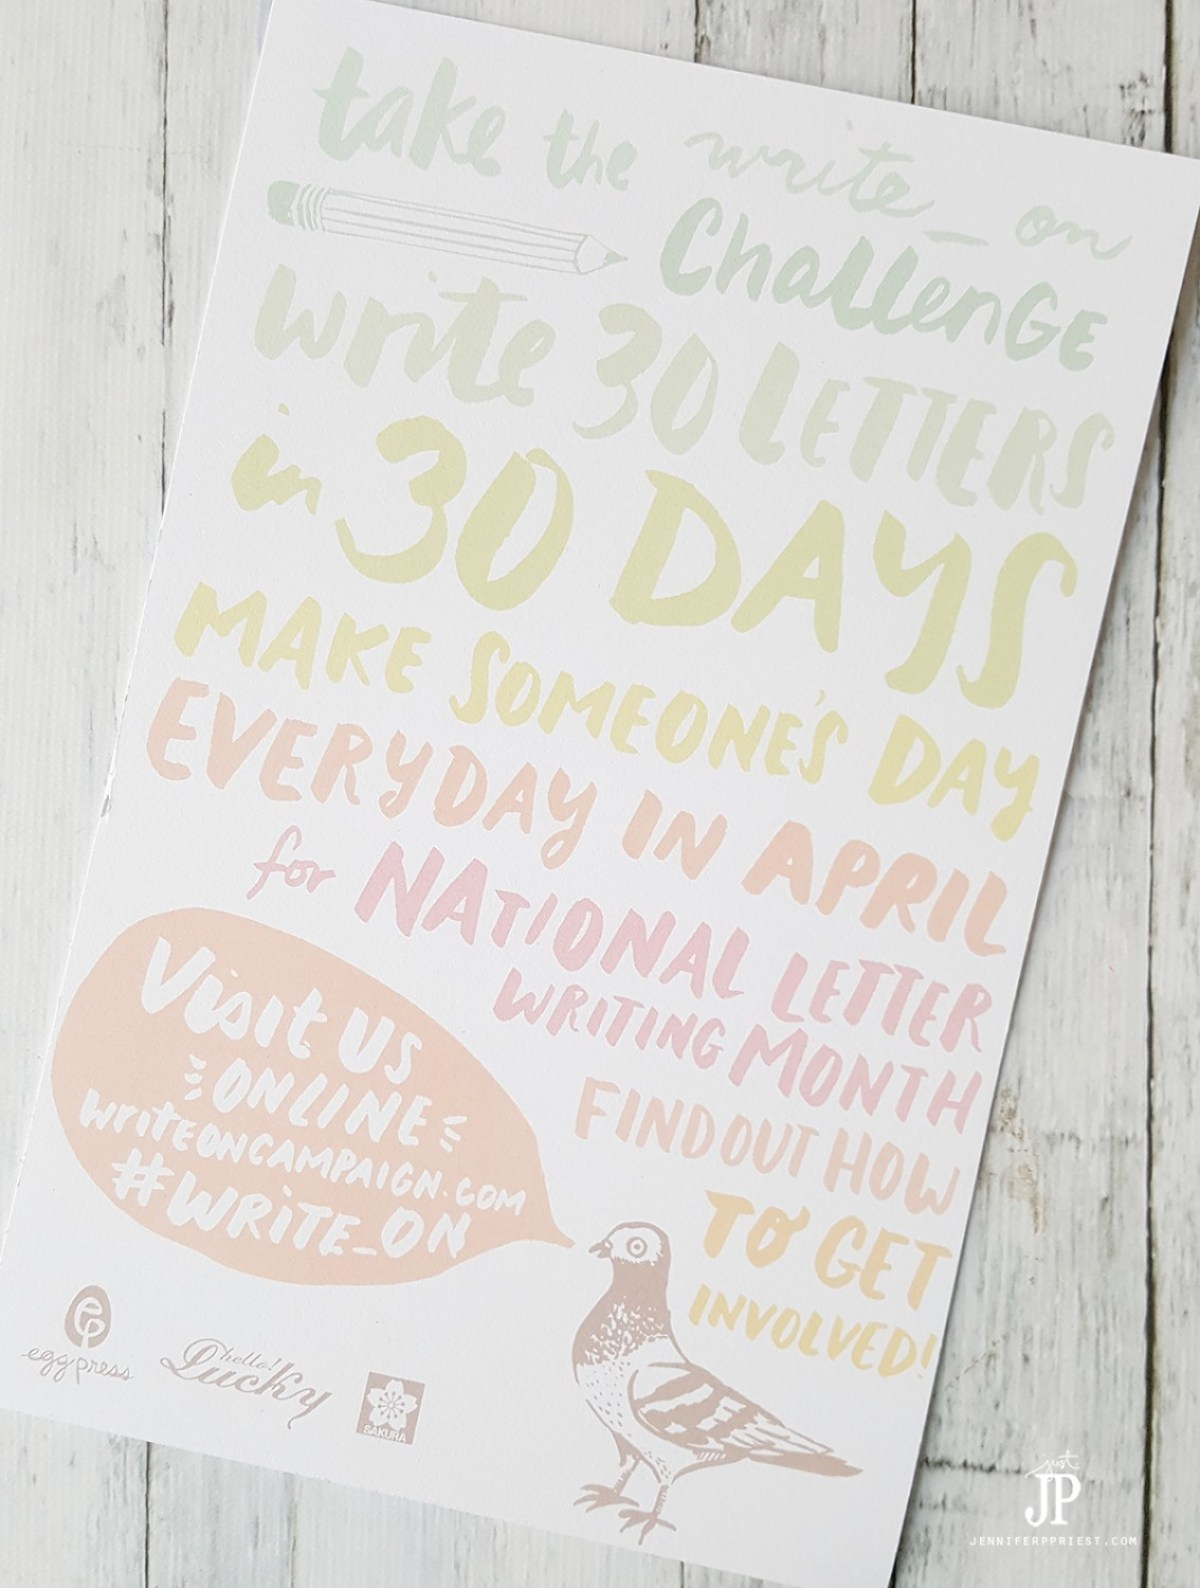 national letter writing month write 30 letters in 30 days in april national letter 23752